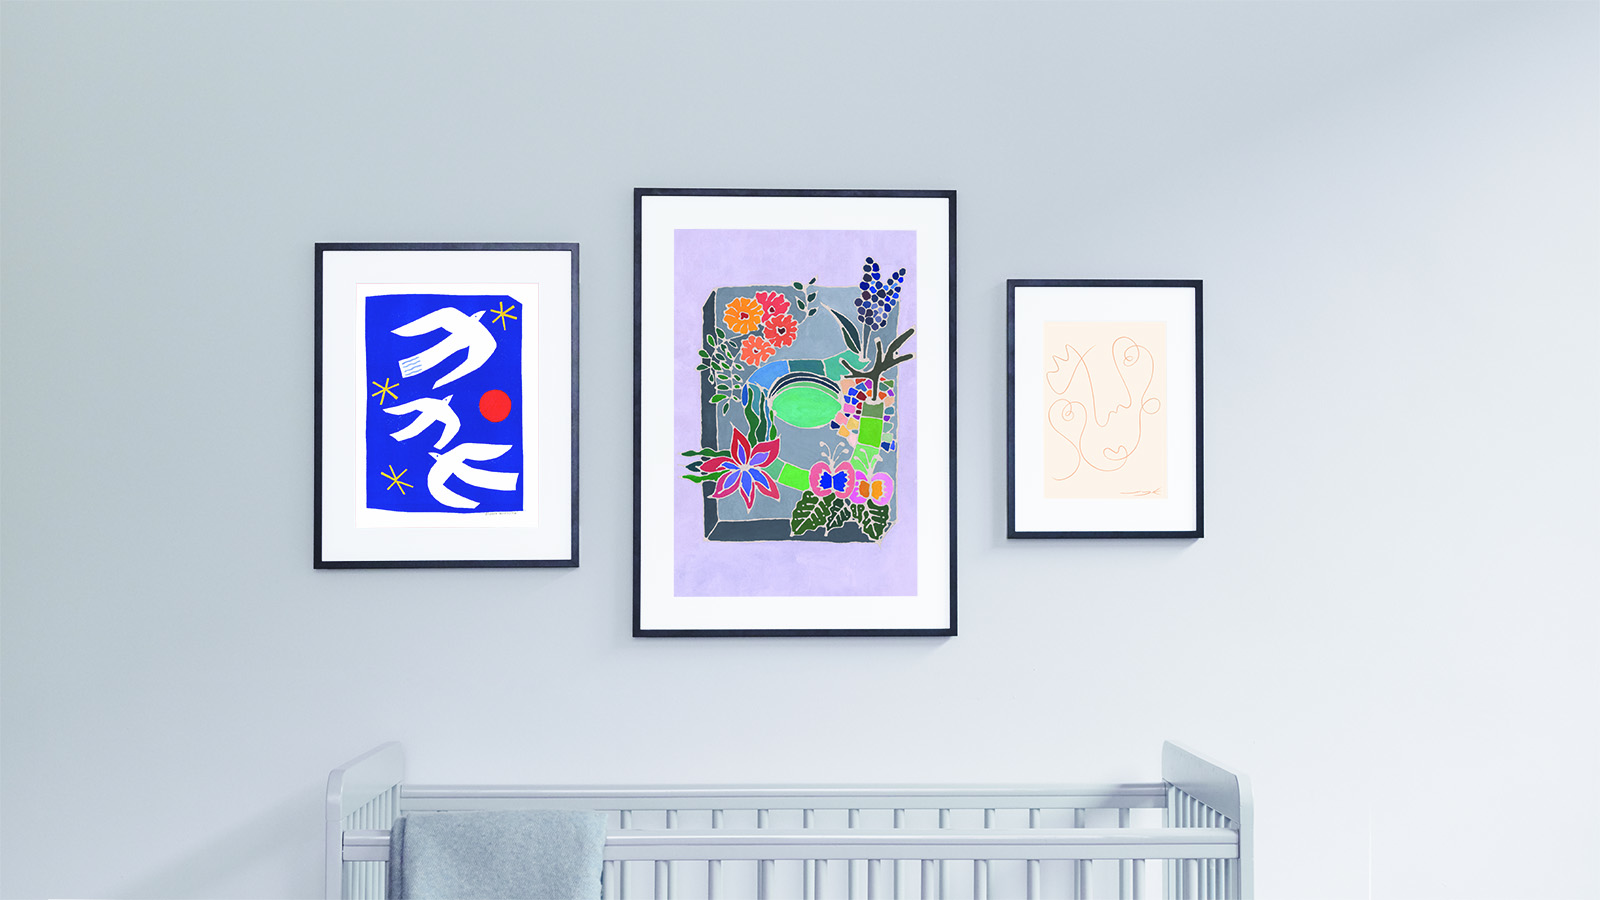 Triptych of artworks in various sizes above a cot. On the left is Sophie Harding's 'Follow Your Dreams' in A3, in the middle is Sophia Niazi's 'Cereal Box Garden' in A2, and on the right is Jessica Yolanda Kaye's A4